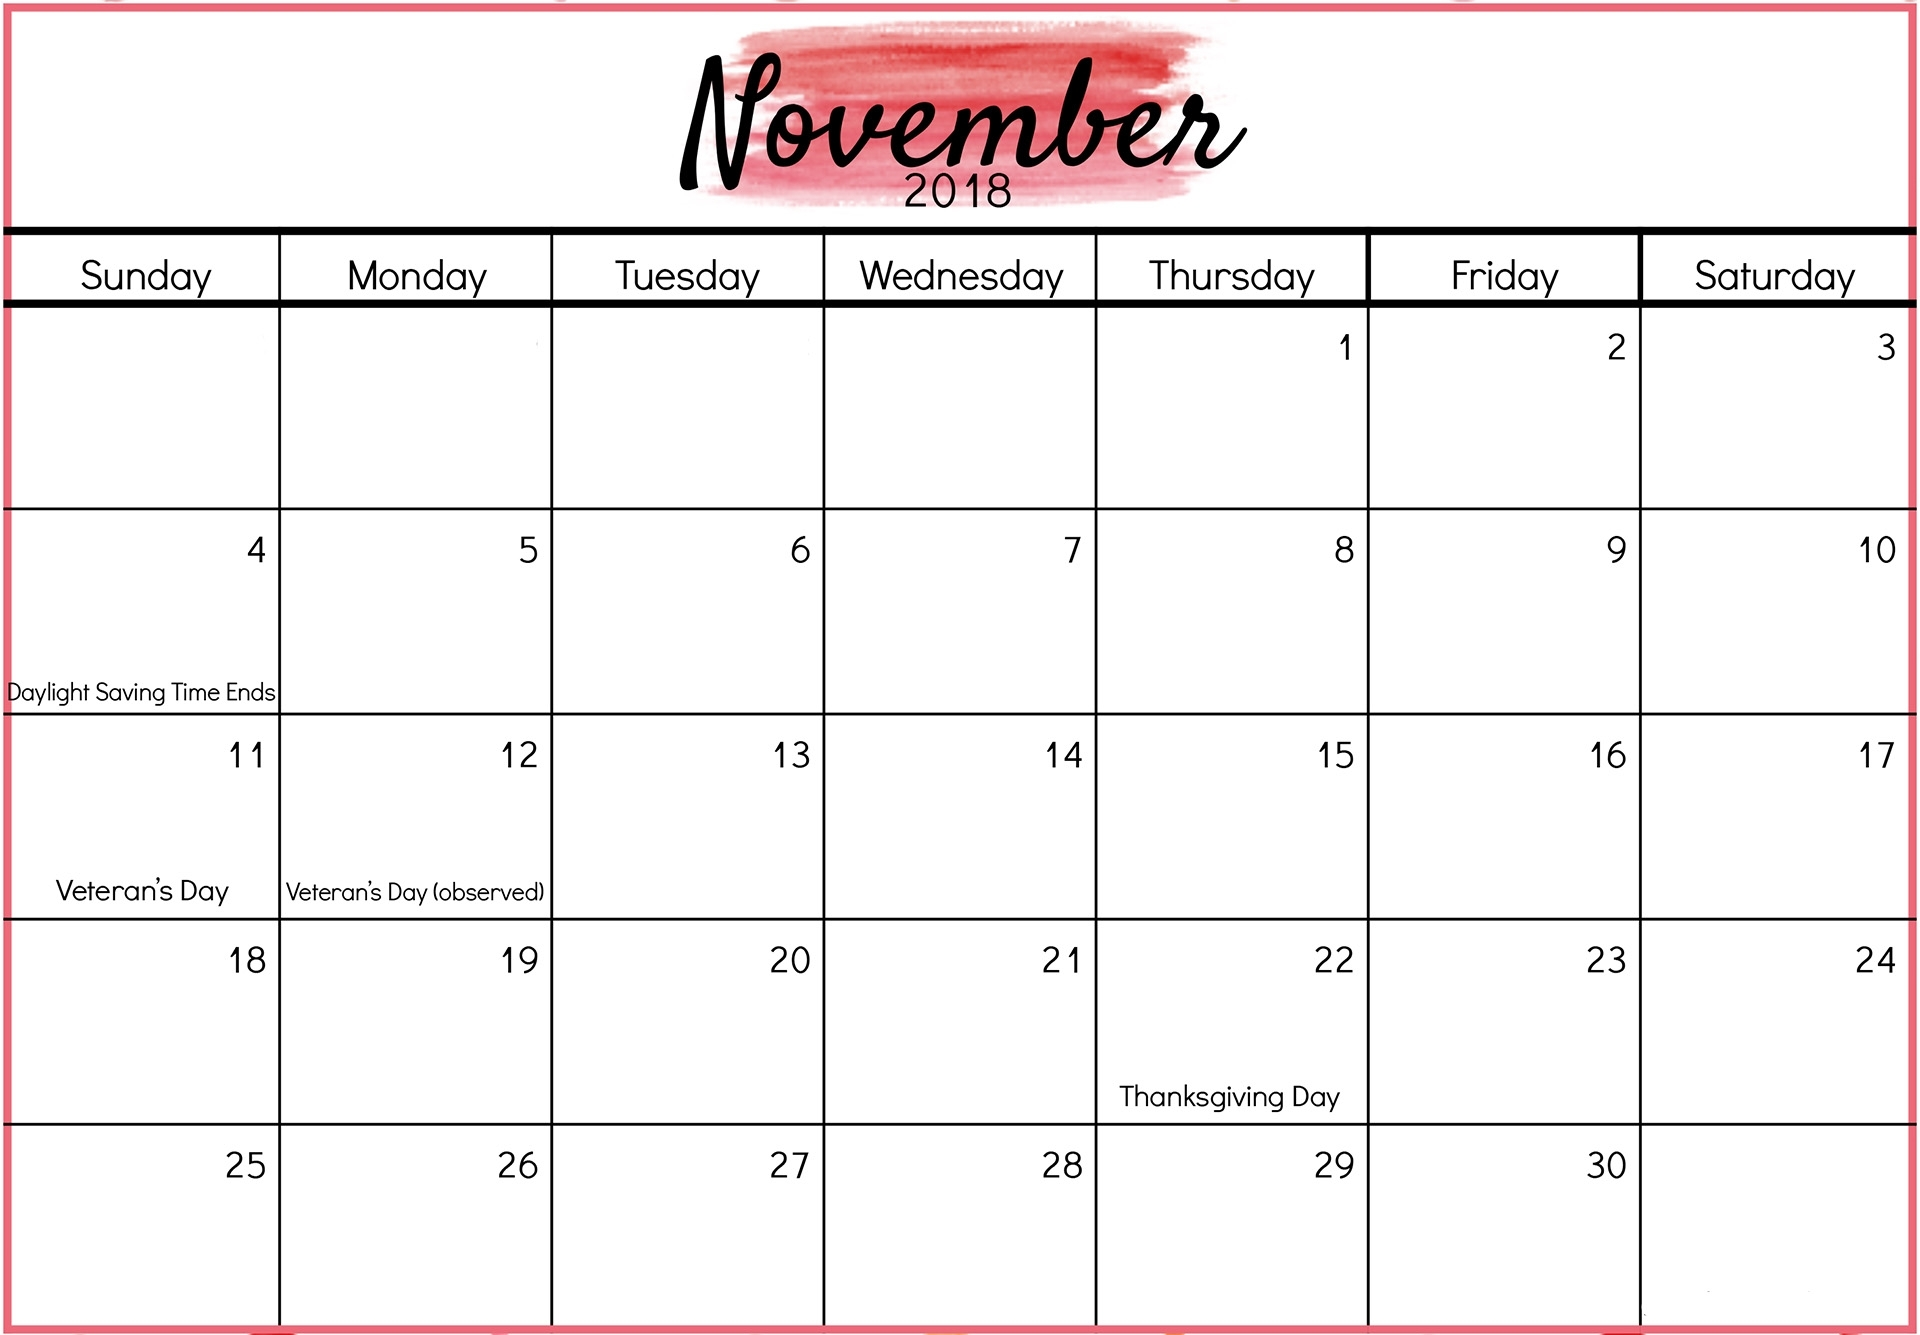 November 2018 Calendar Printable - Fresh Calendars within Blank Calendar For November And December